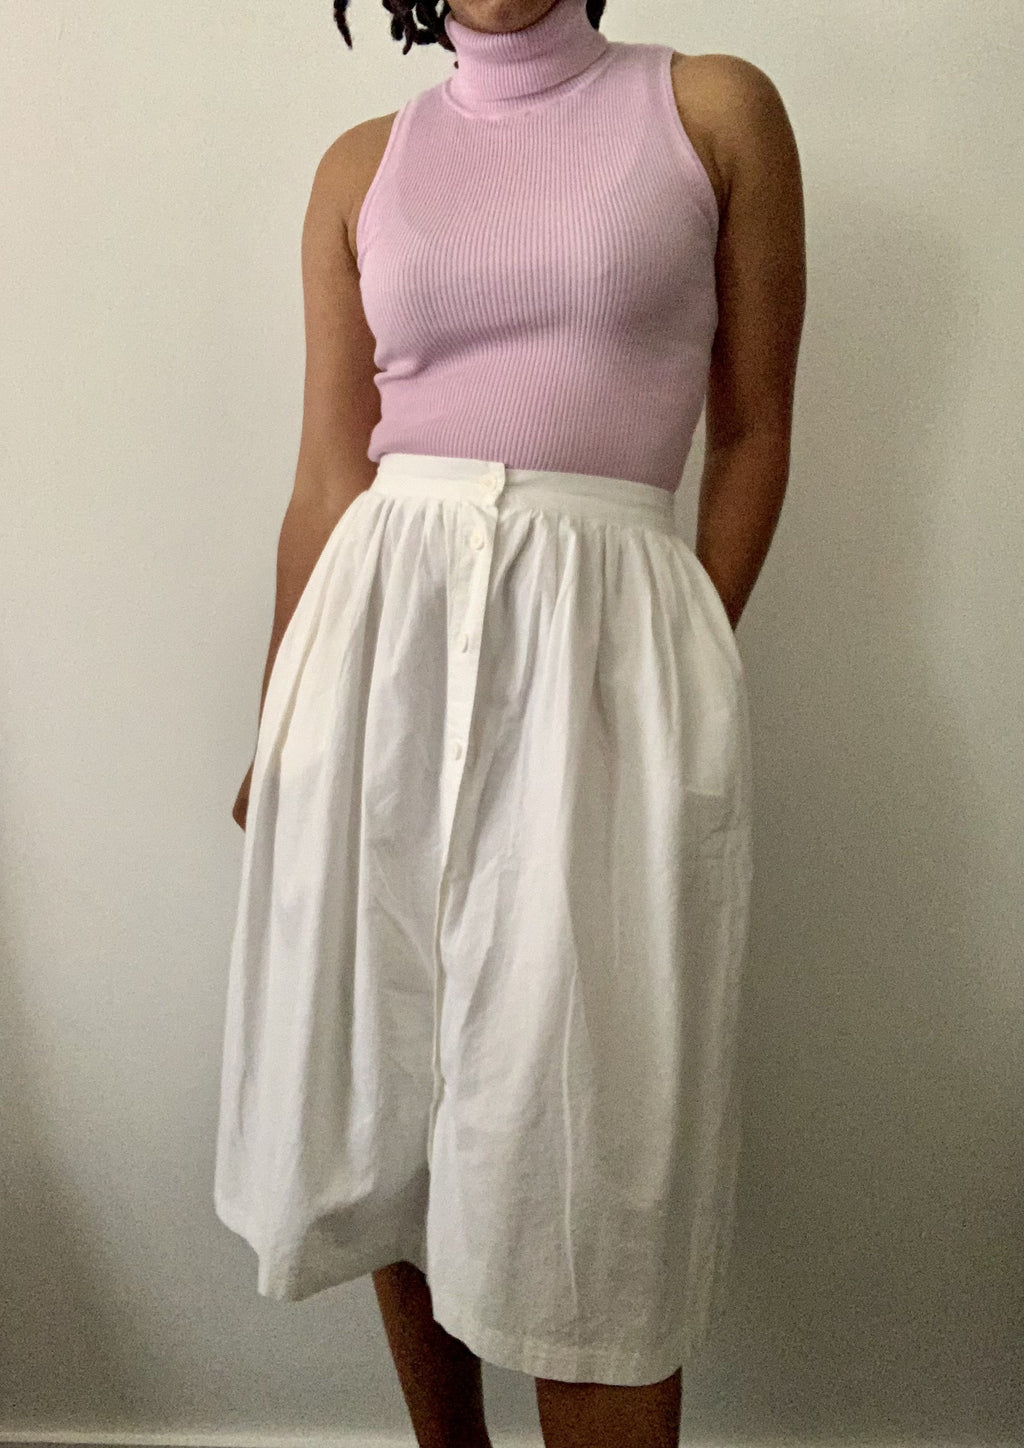 Vintage White Central Button Skirt